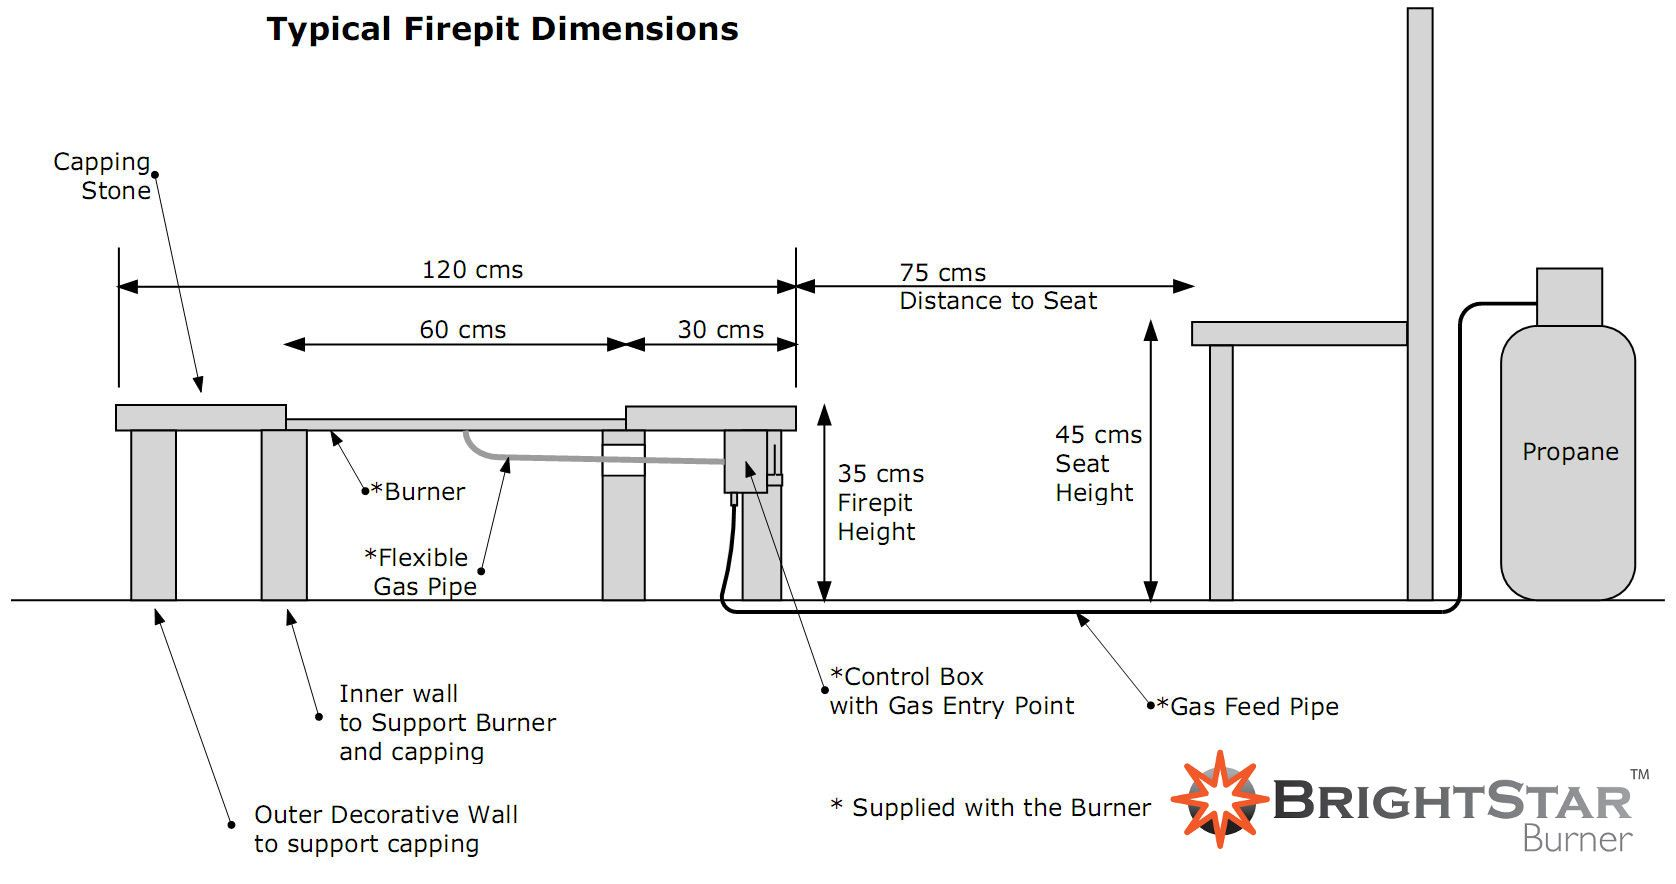 Fire Pit Home Design Fire Pit Layout Fire Pit Height Fire Pit